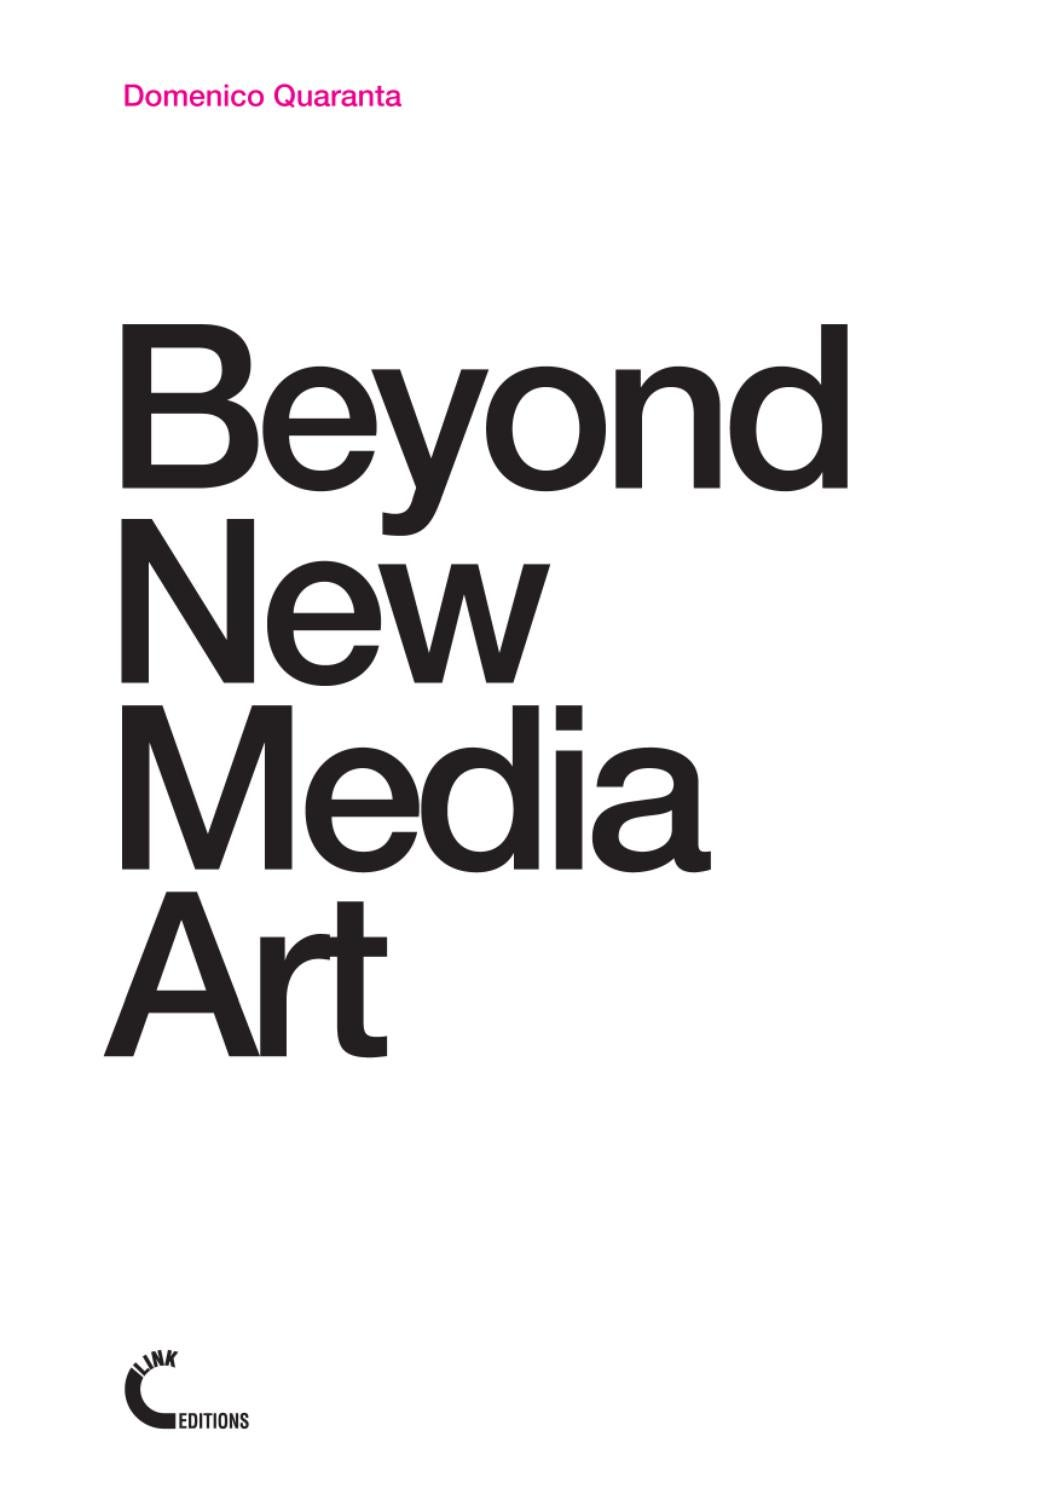 Beyond New Media Art by Link Editions - issuu 28e24acb6e